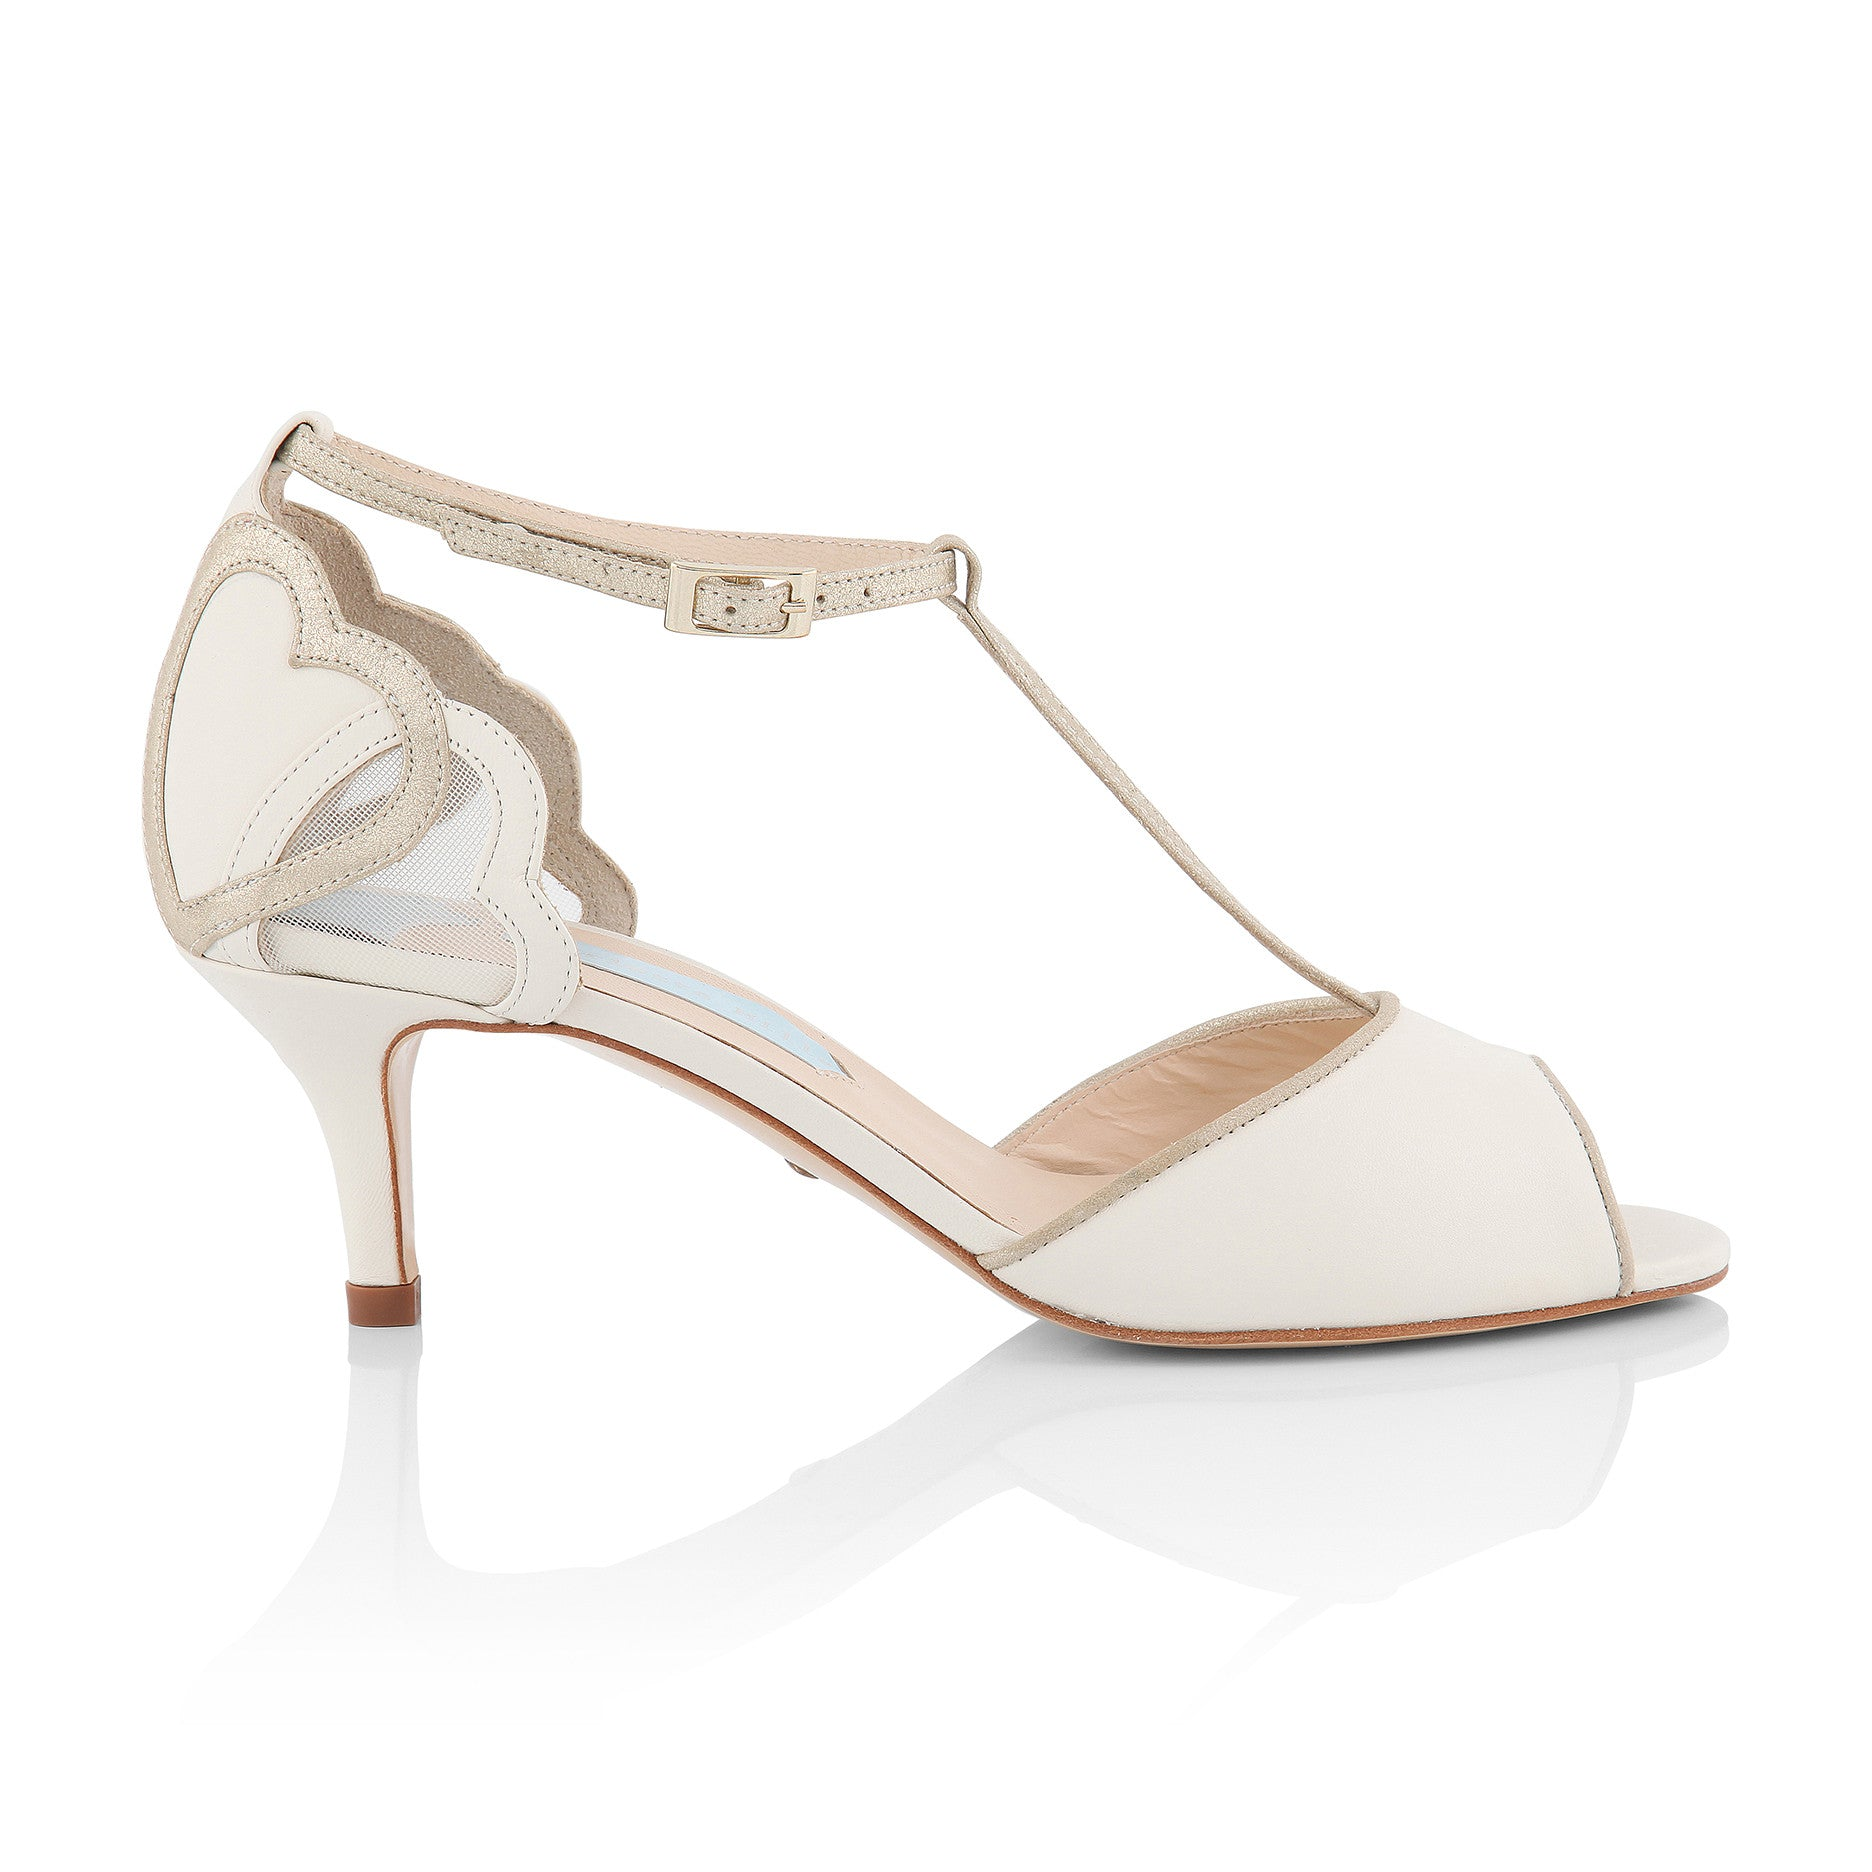 Low heel bridal shoe with T bar